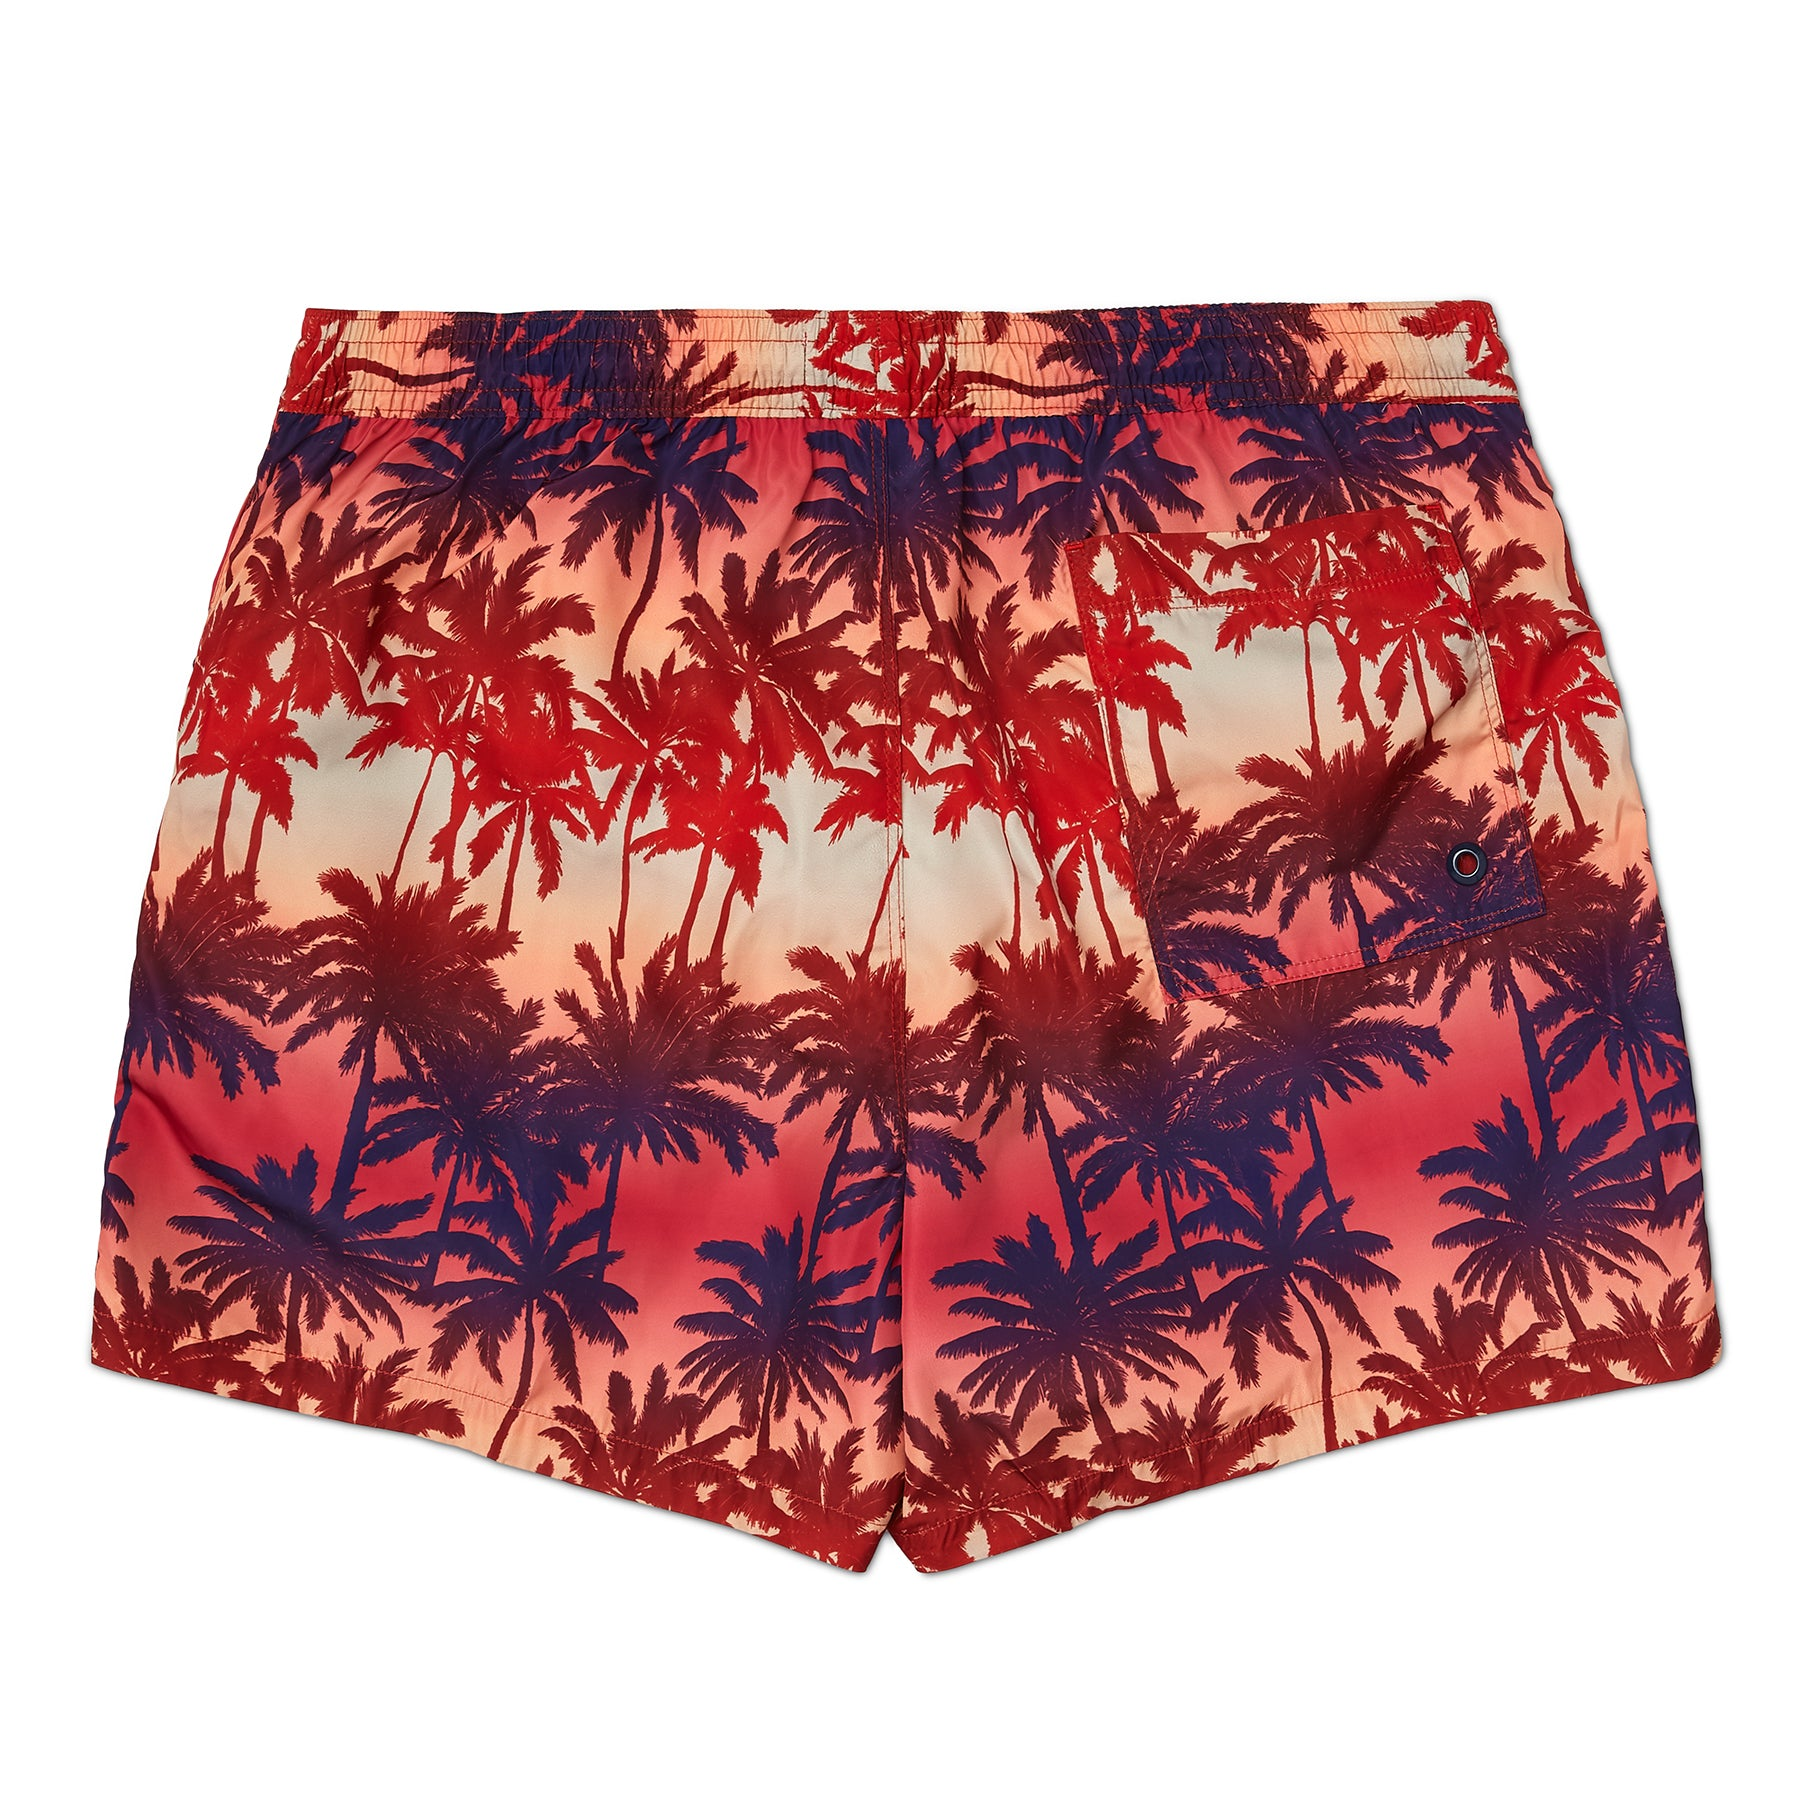 Sunset Palm Tree Print Swim Short, Regular Length